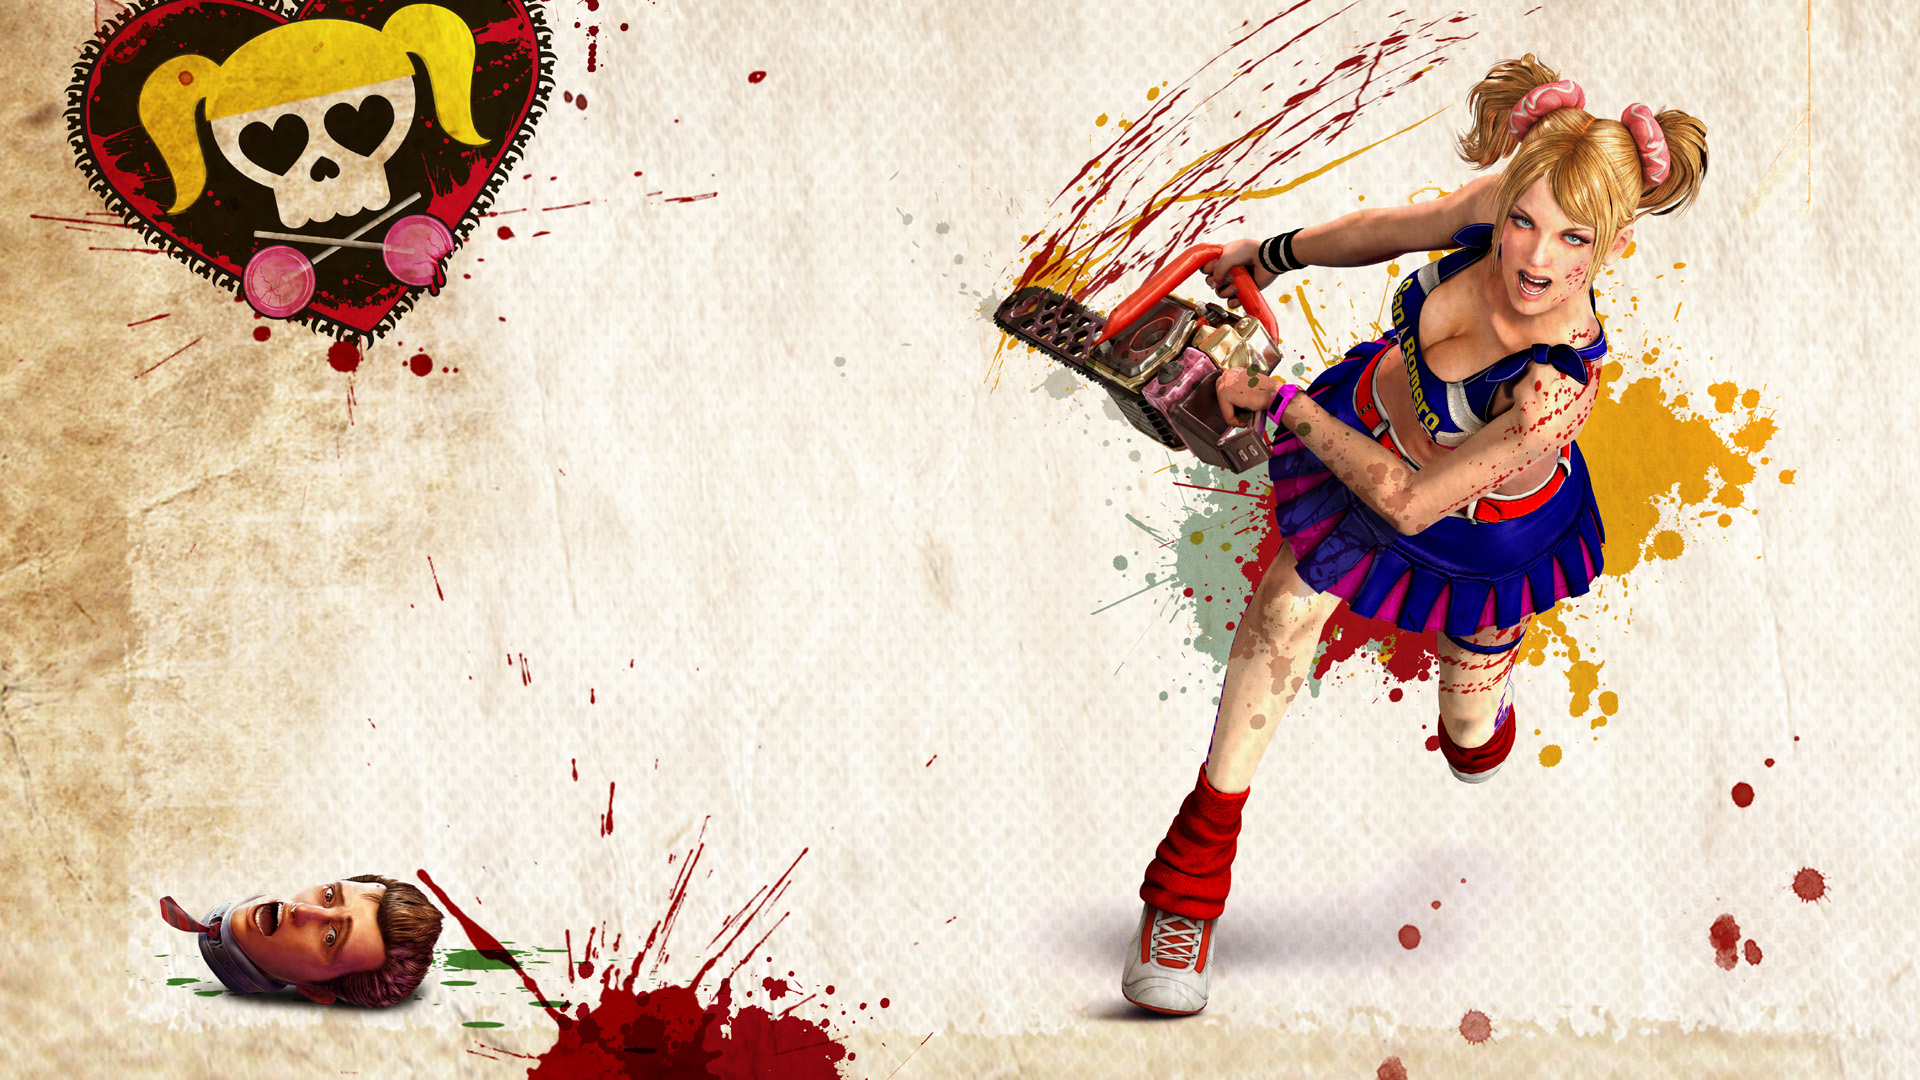 Cheerleader Zombie Hunter 2373.77 Kb